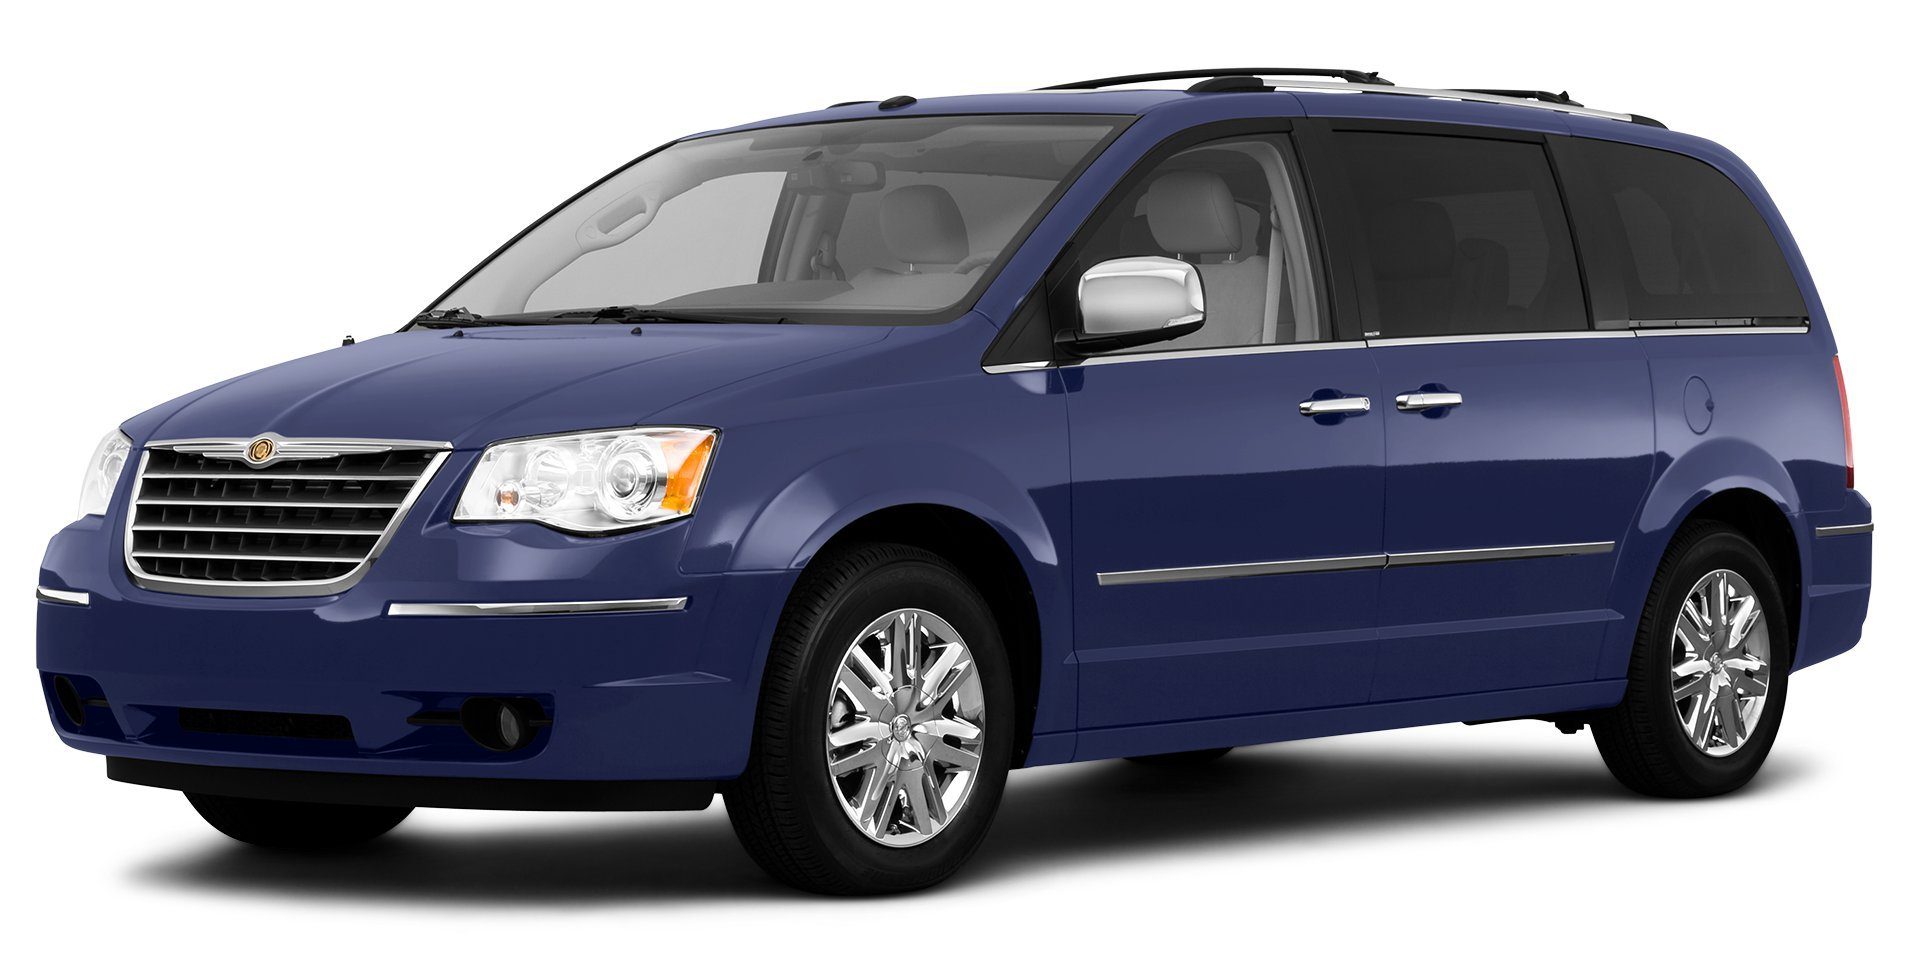 2010 chrysler town country reviews images and specs vehicles. Black Bedroom Furniture Sets. Home Design Ideas